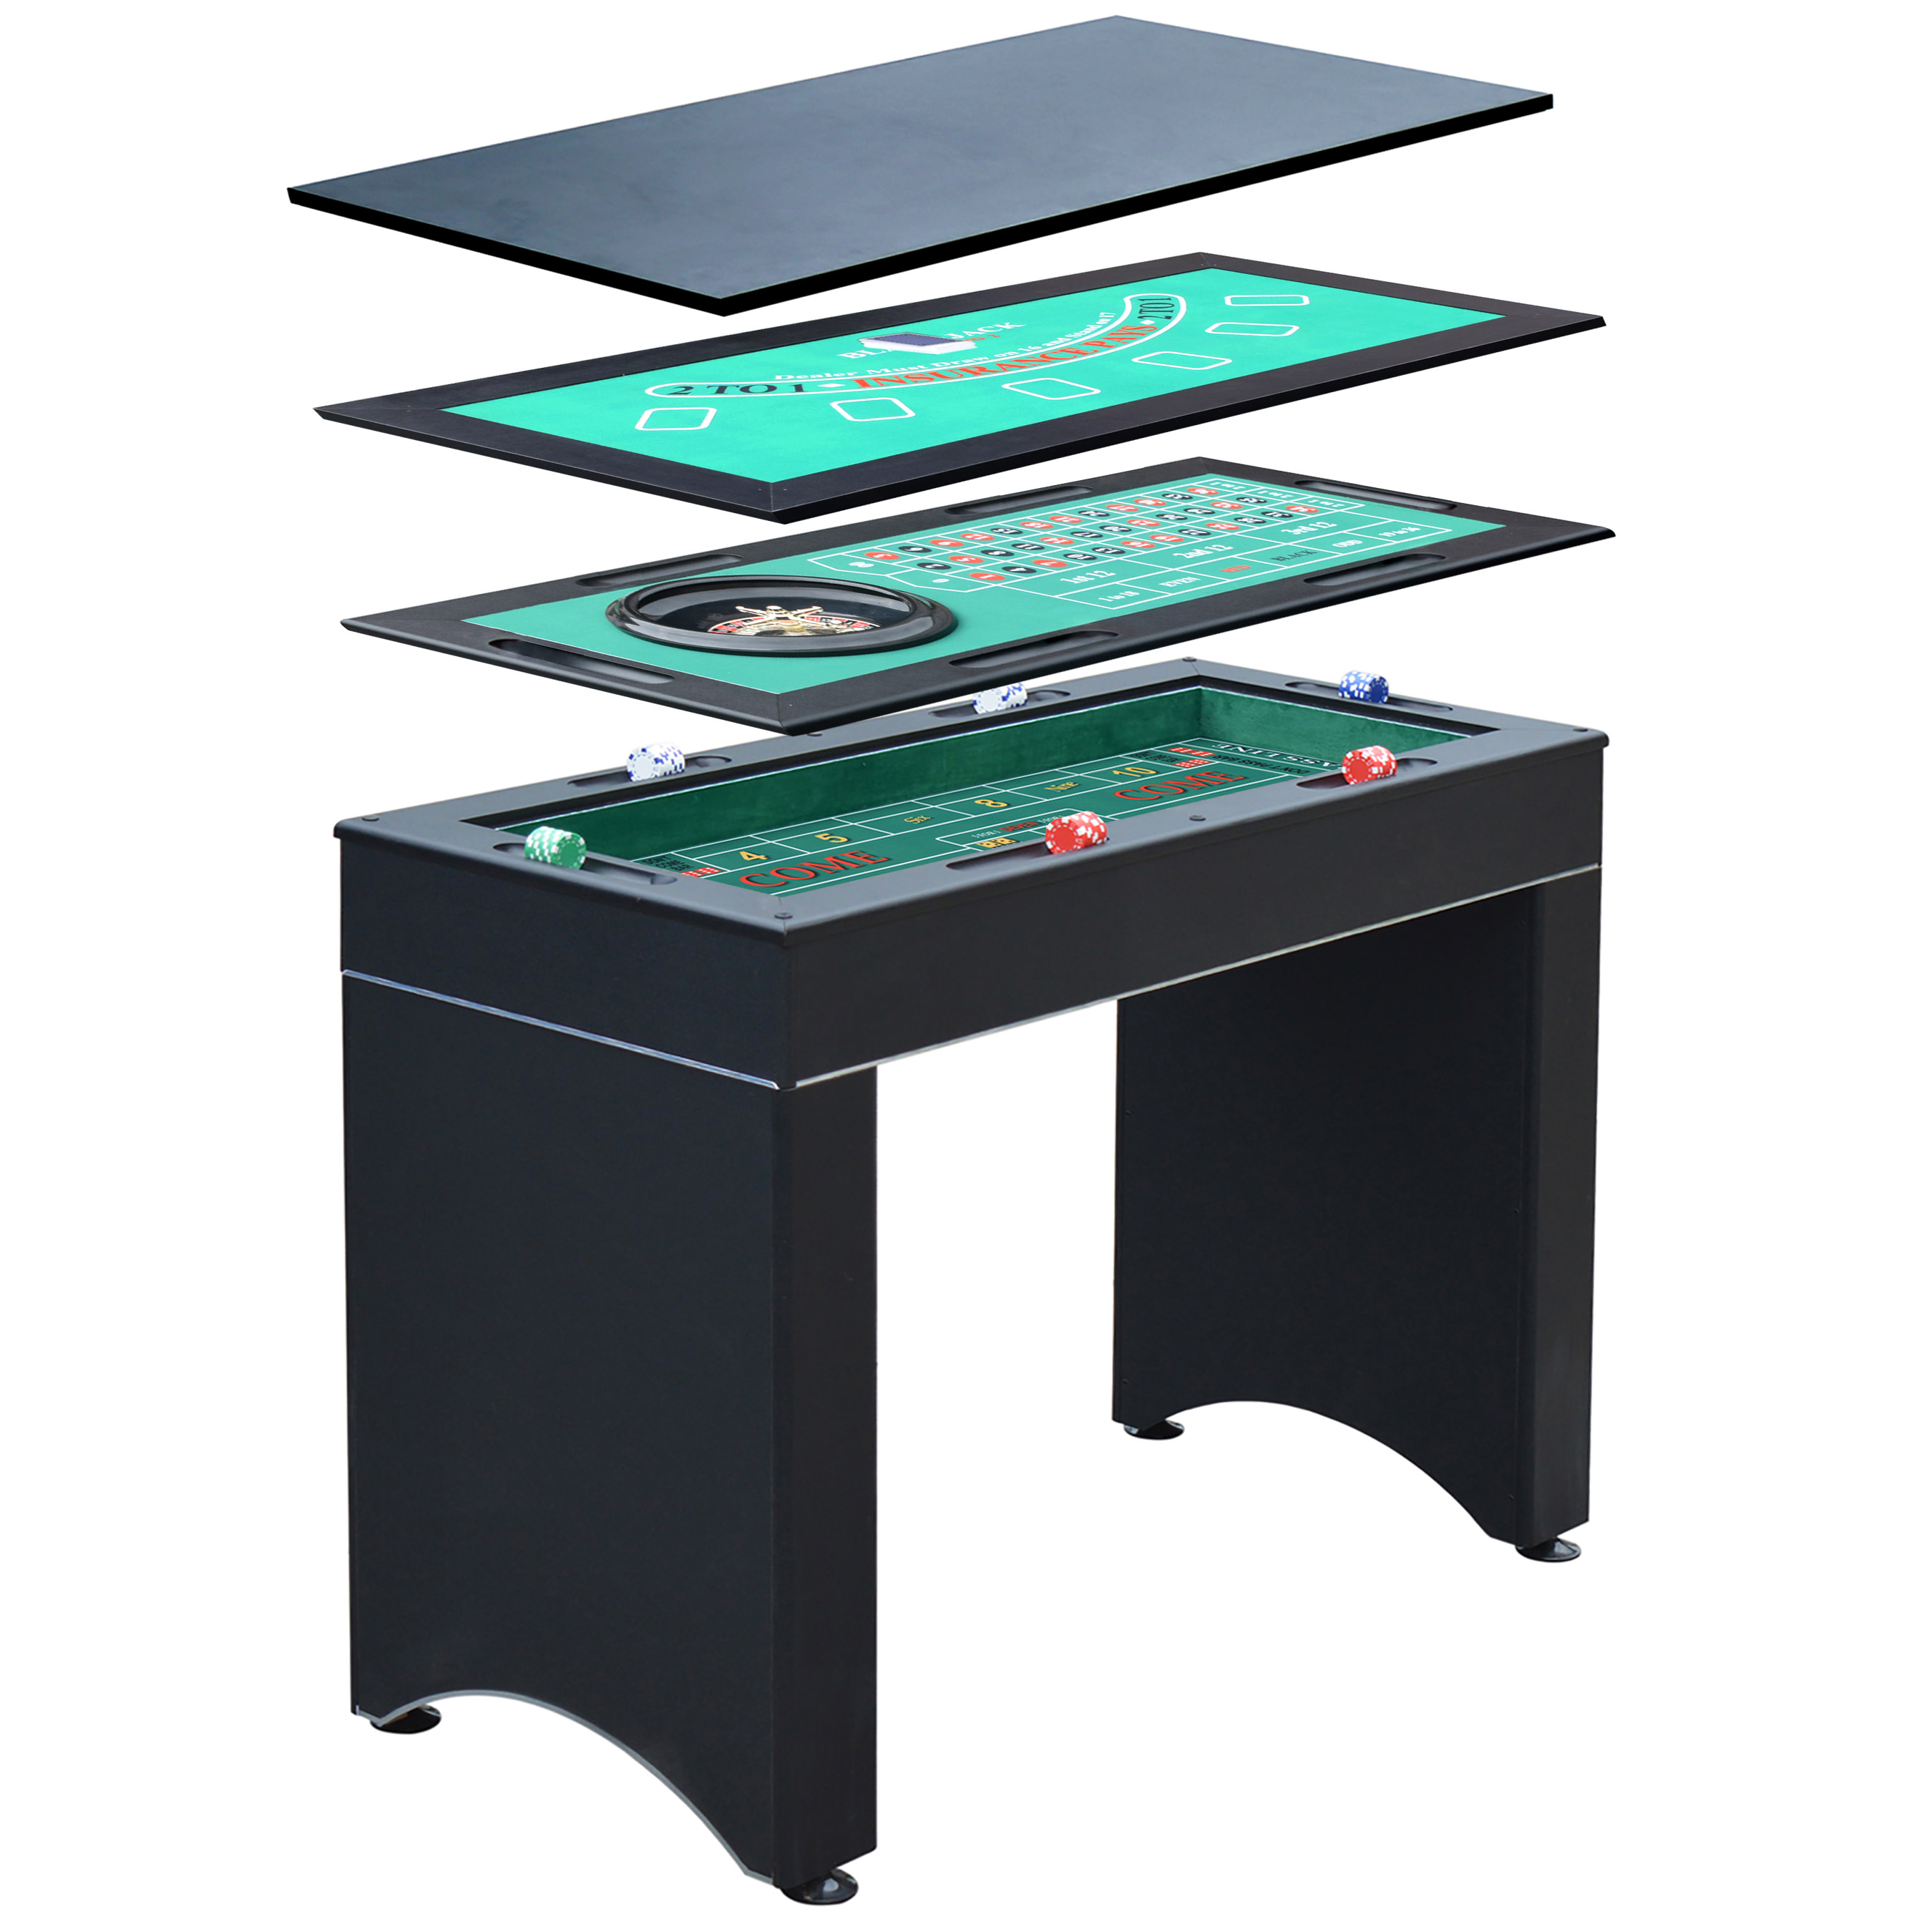 Hathaway Monte Carlo 4-In-1 Multi Game Casino Table with Blackjack, Roulette, Craps and Bar Table – Includes Accessories